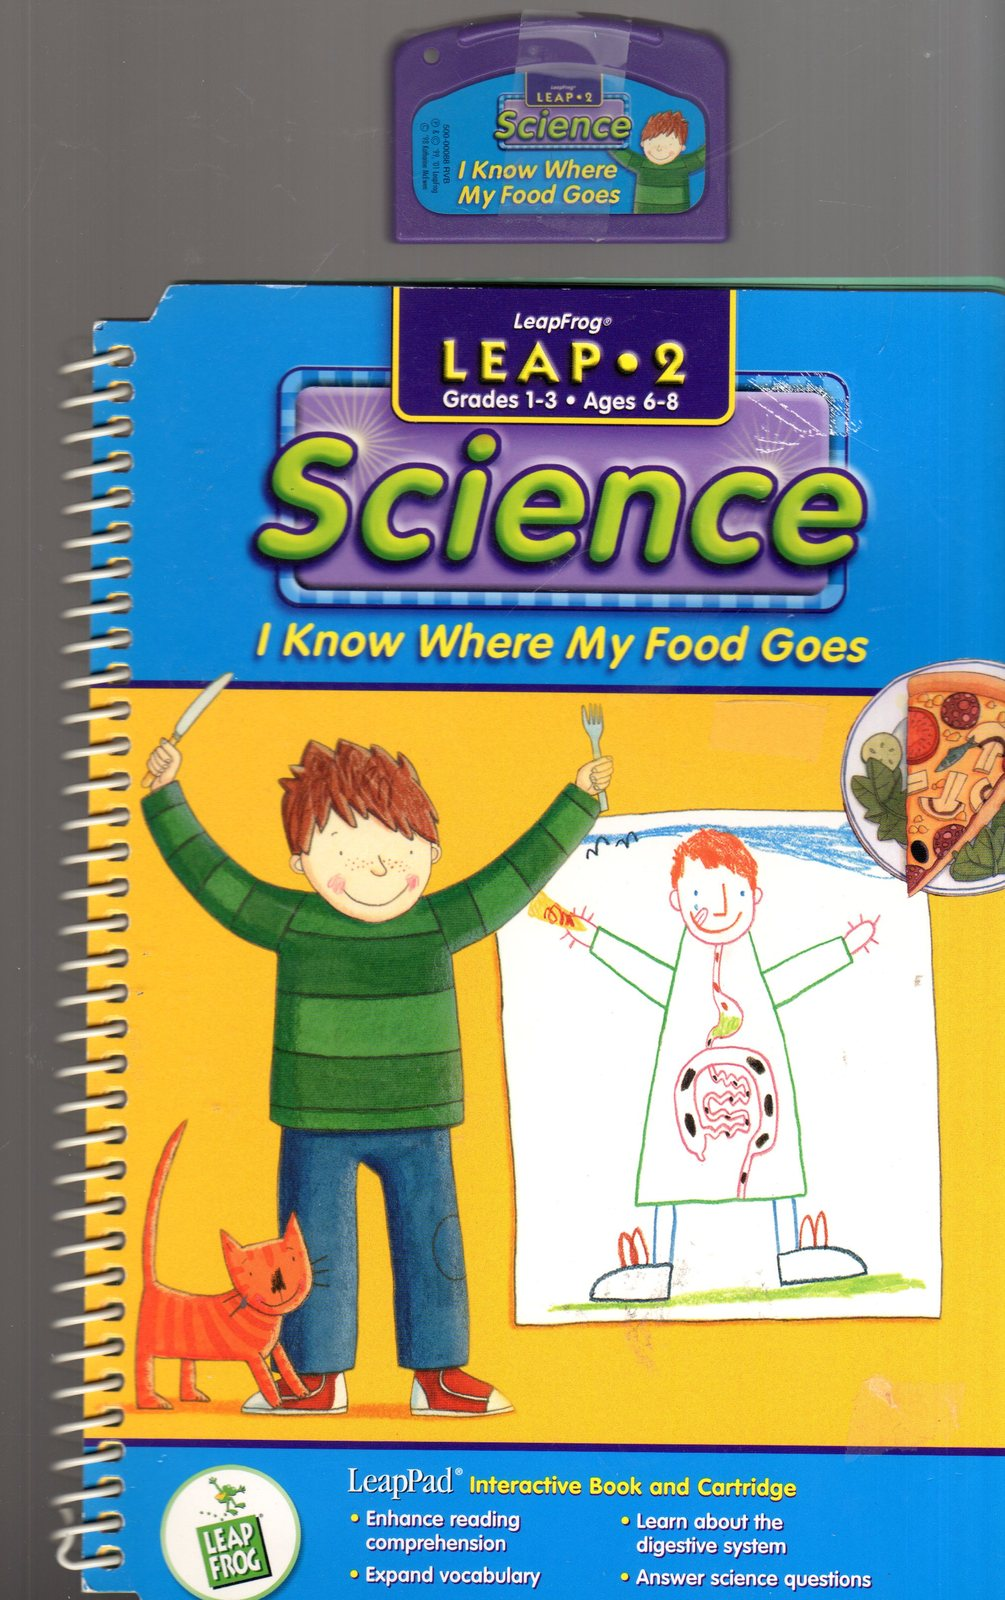 "LeaFrog Leap 2 - Science ""I Know Where My Food Goes"""